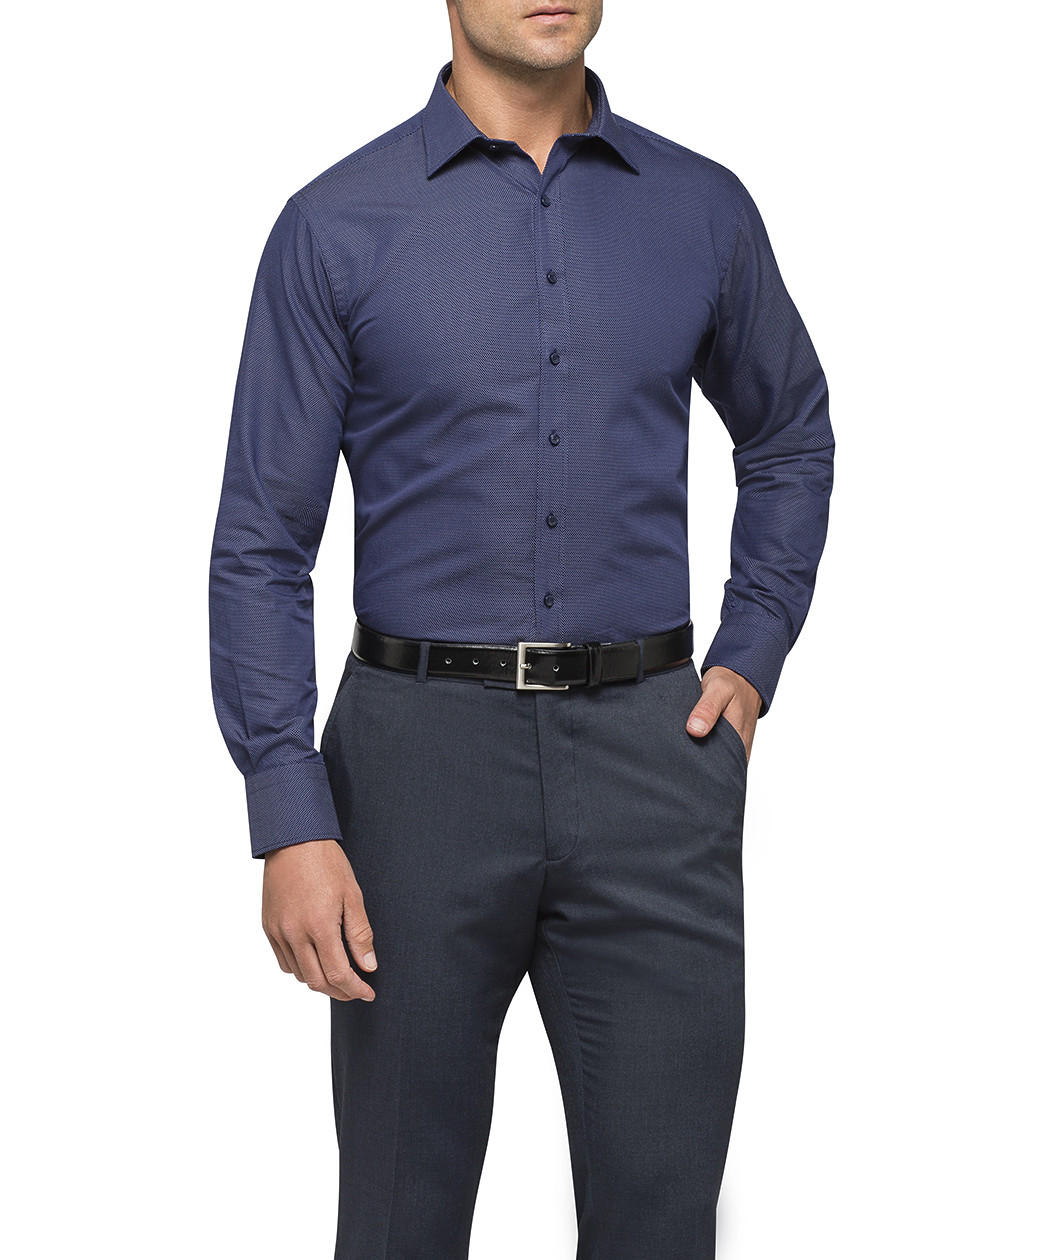 trismaschacon.tk: mens van heusen shirts: Clothing & AccessoriesShop Kindle, Echo & Fire · Save with Our Low Prices · Shop Our Deals · Discover Prime Music.